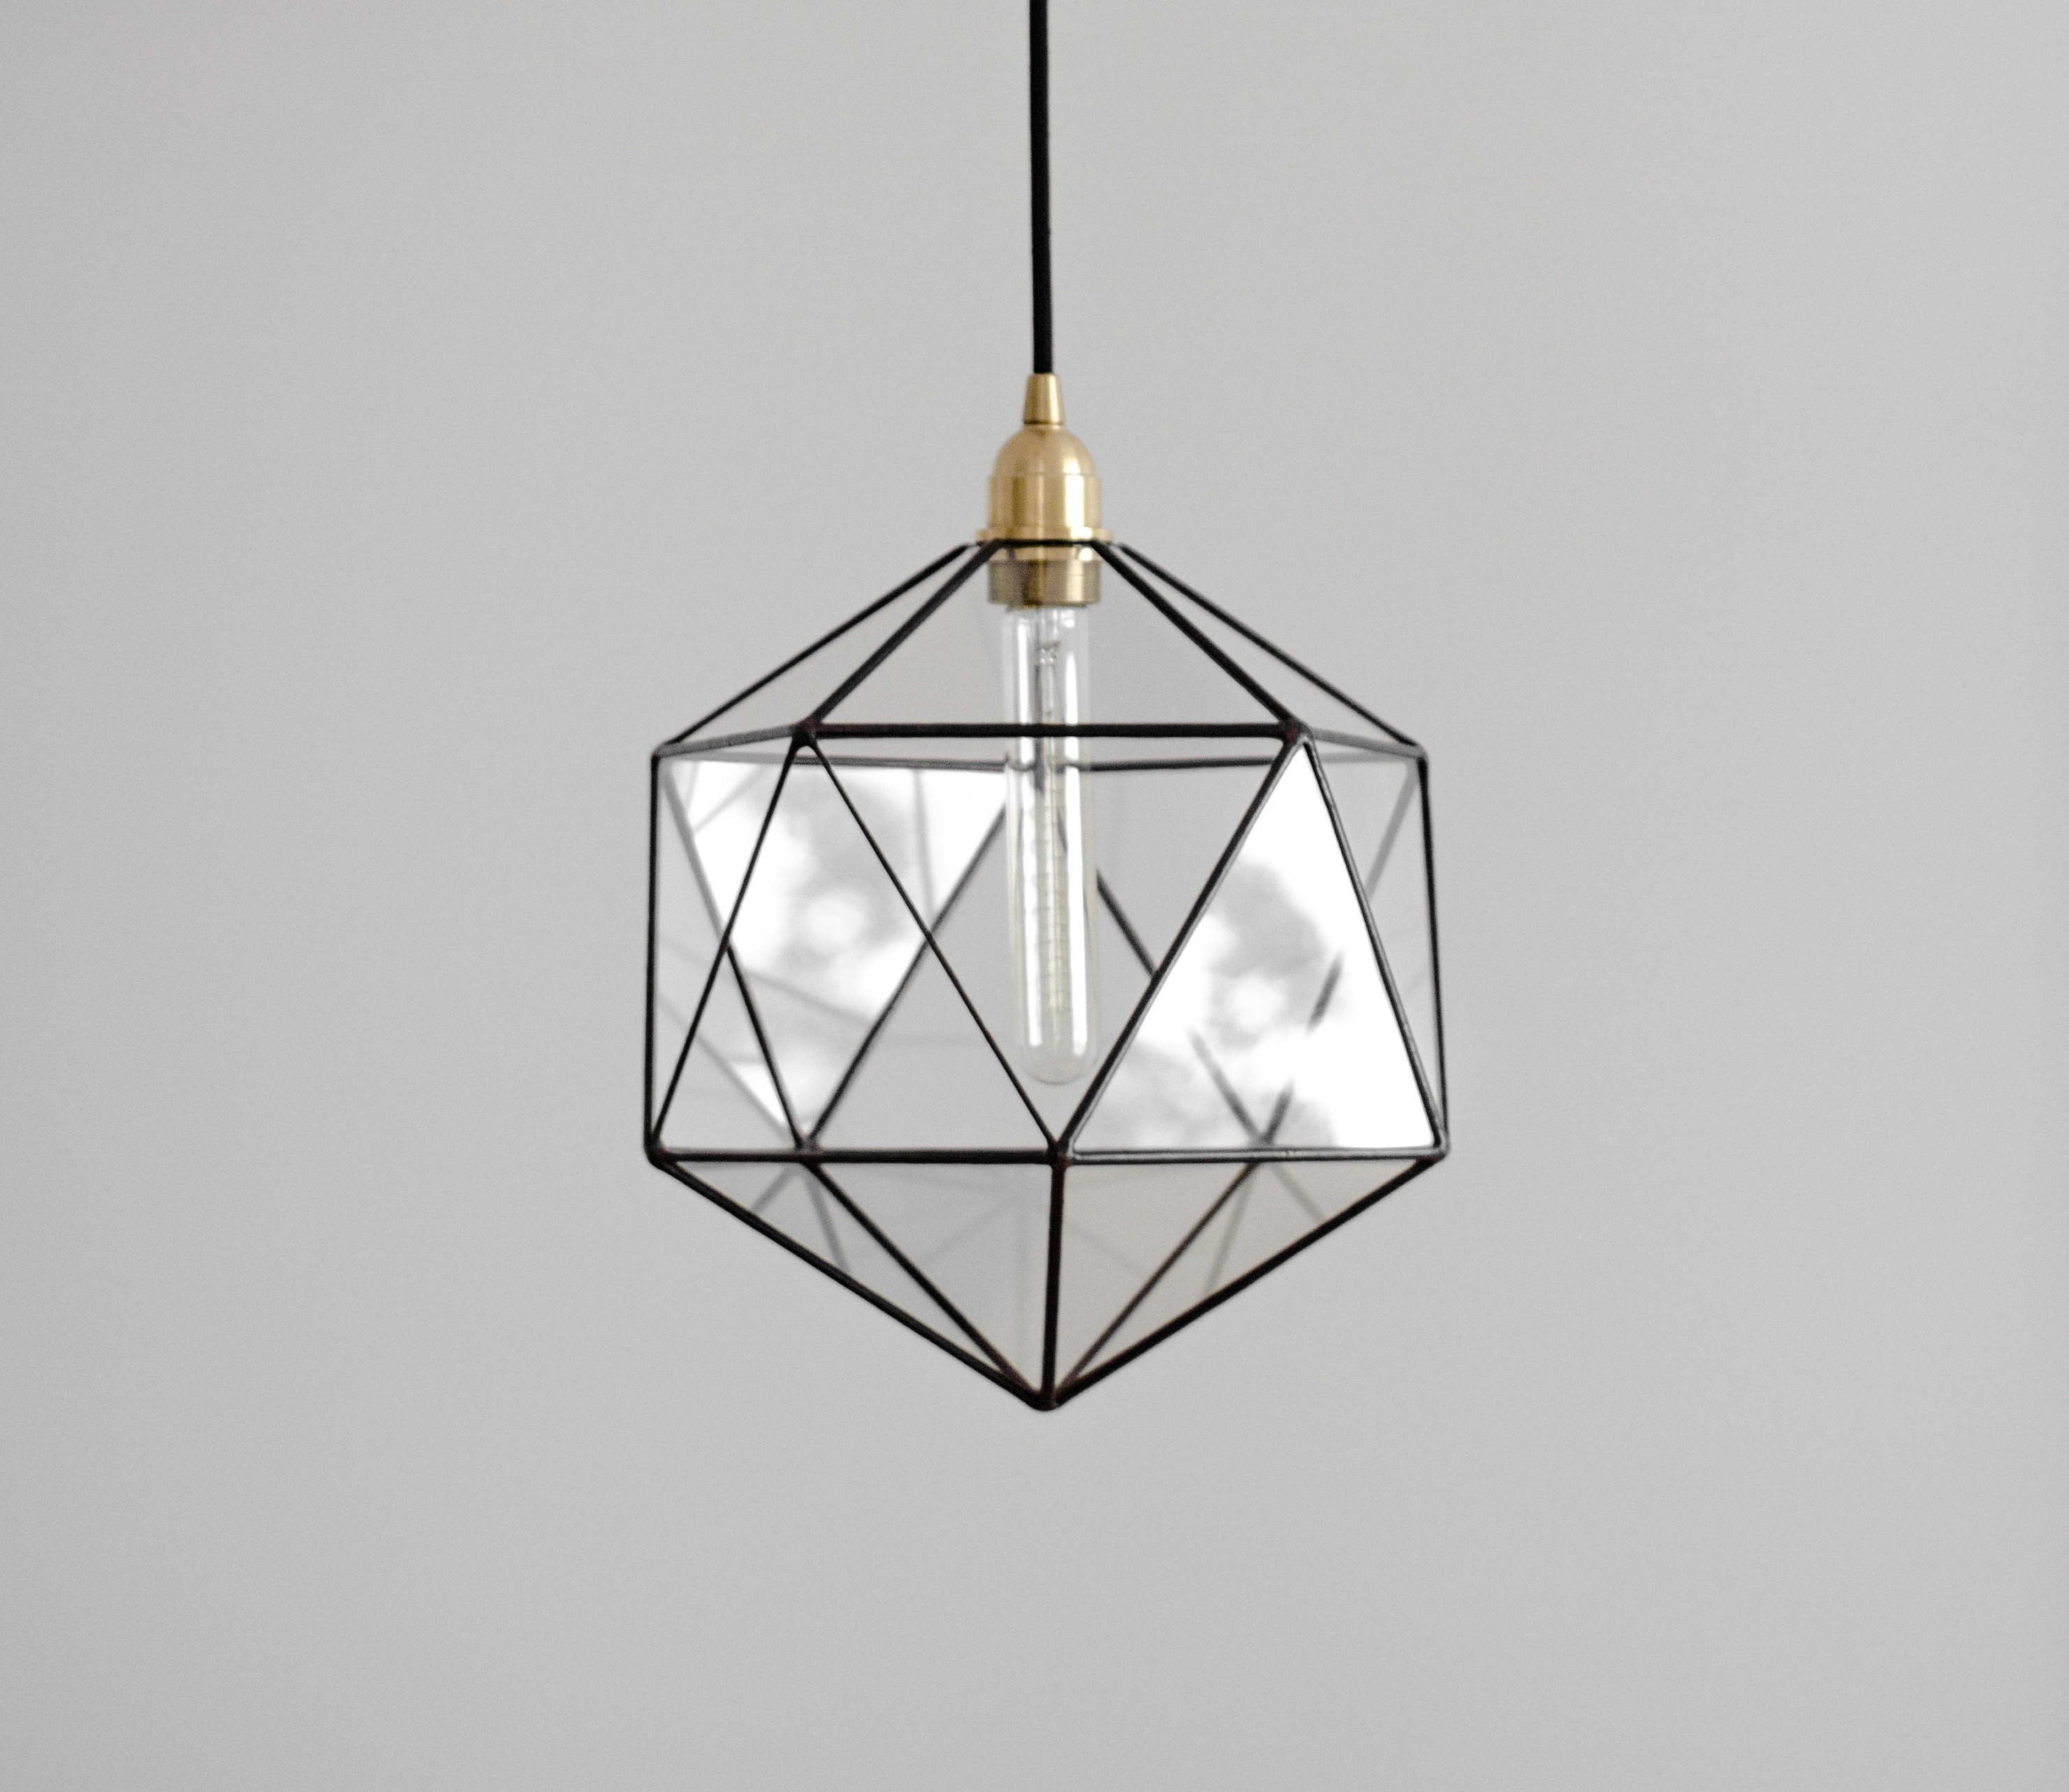 Icosahedron Glass Chandelier / Geometric Pendant Light / Modern Warm Retro Bulb Lamp / 70's Industrial Retro Furniture / Hanging Lighting Within 1 Light Unique / Statement Geometric Pendants (View 19 of 30)